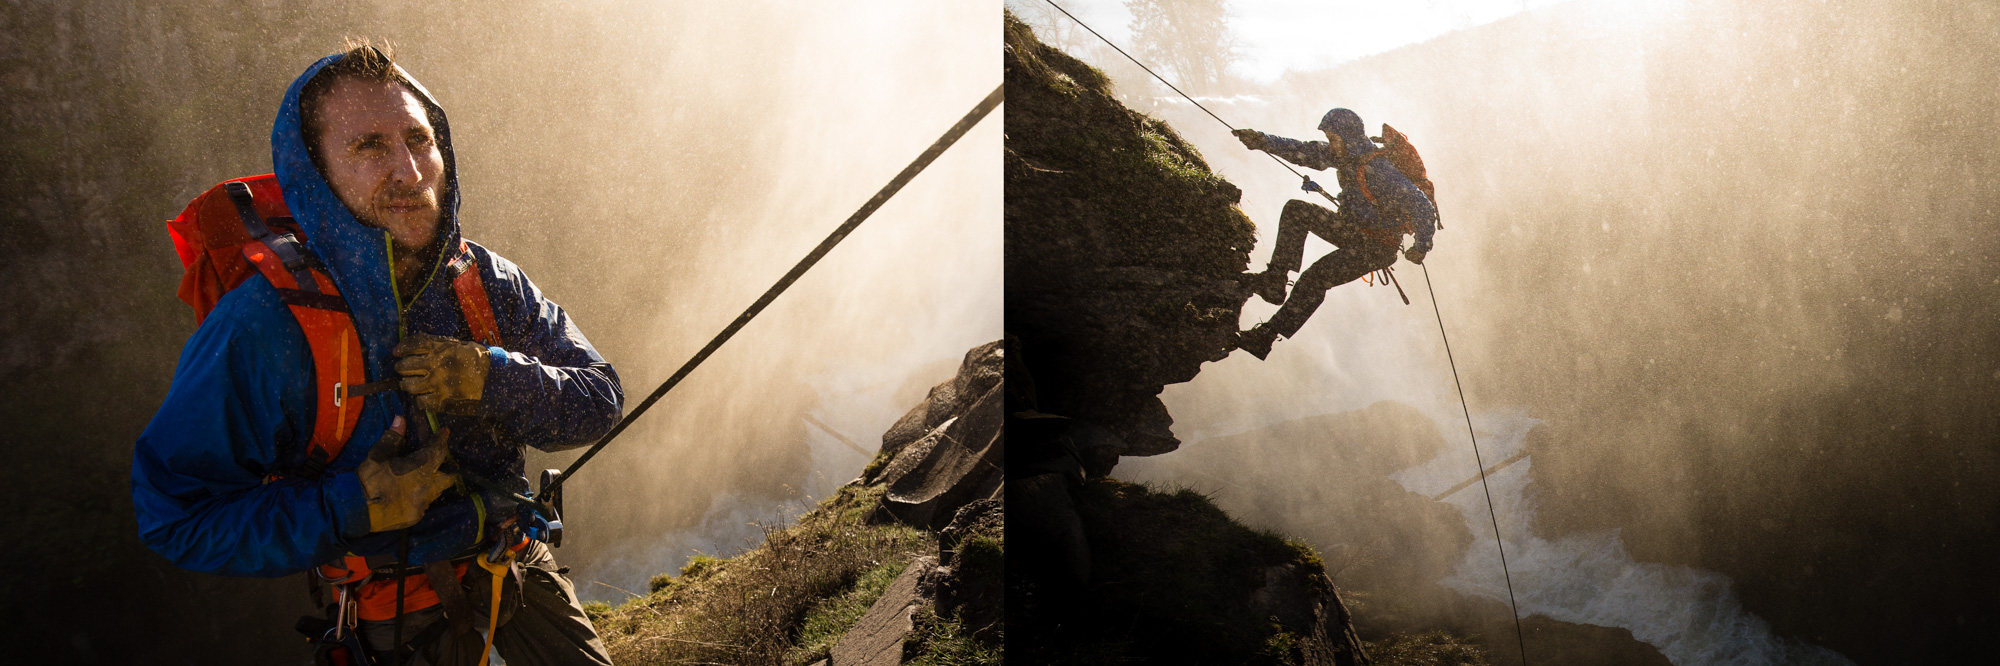 Action Sports Photographer | Rappel Waterfall